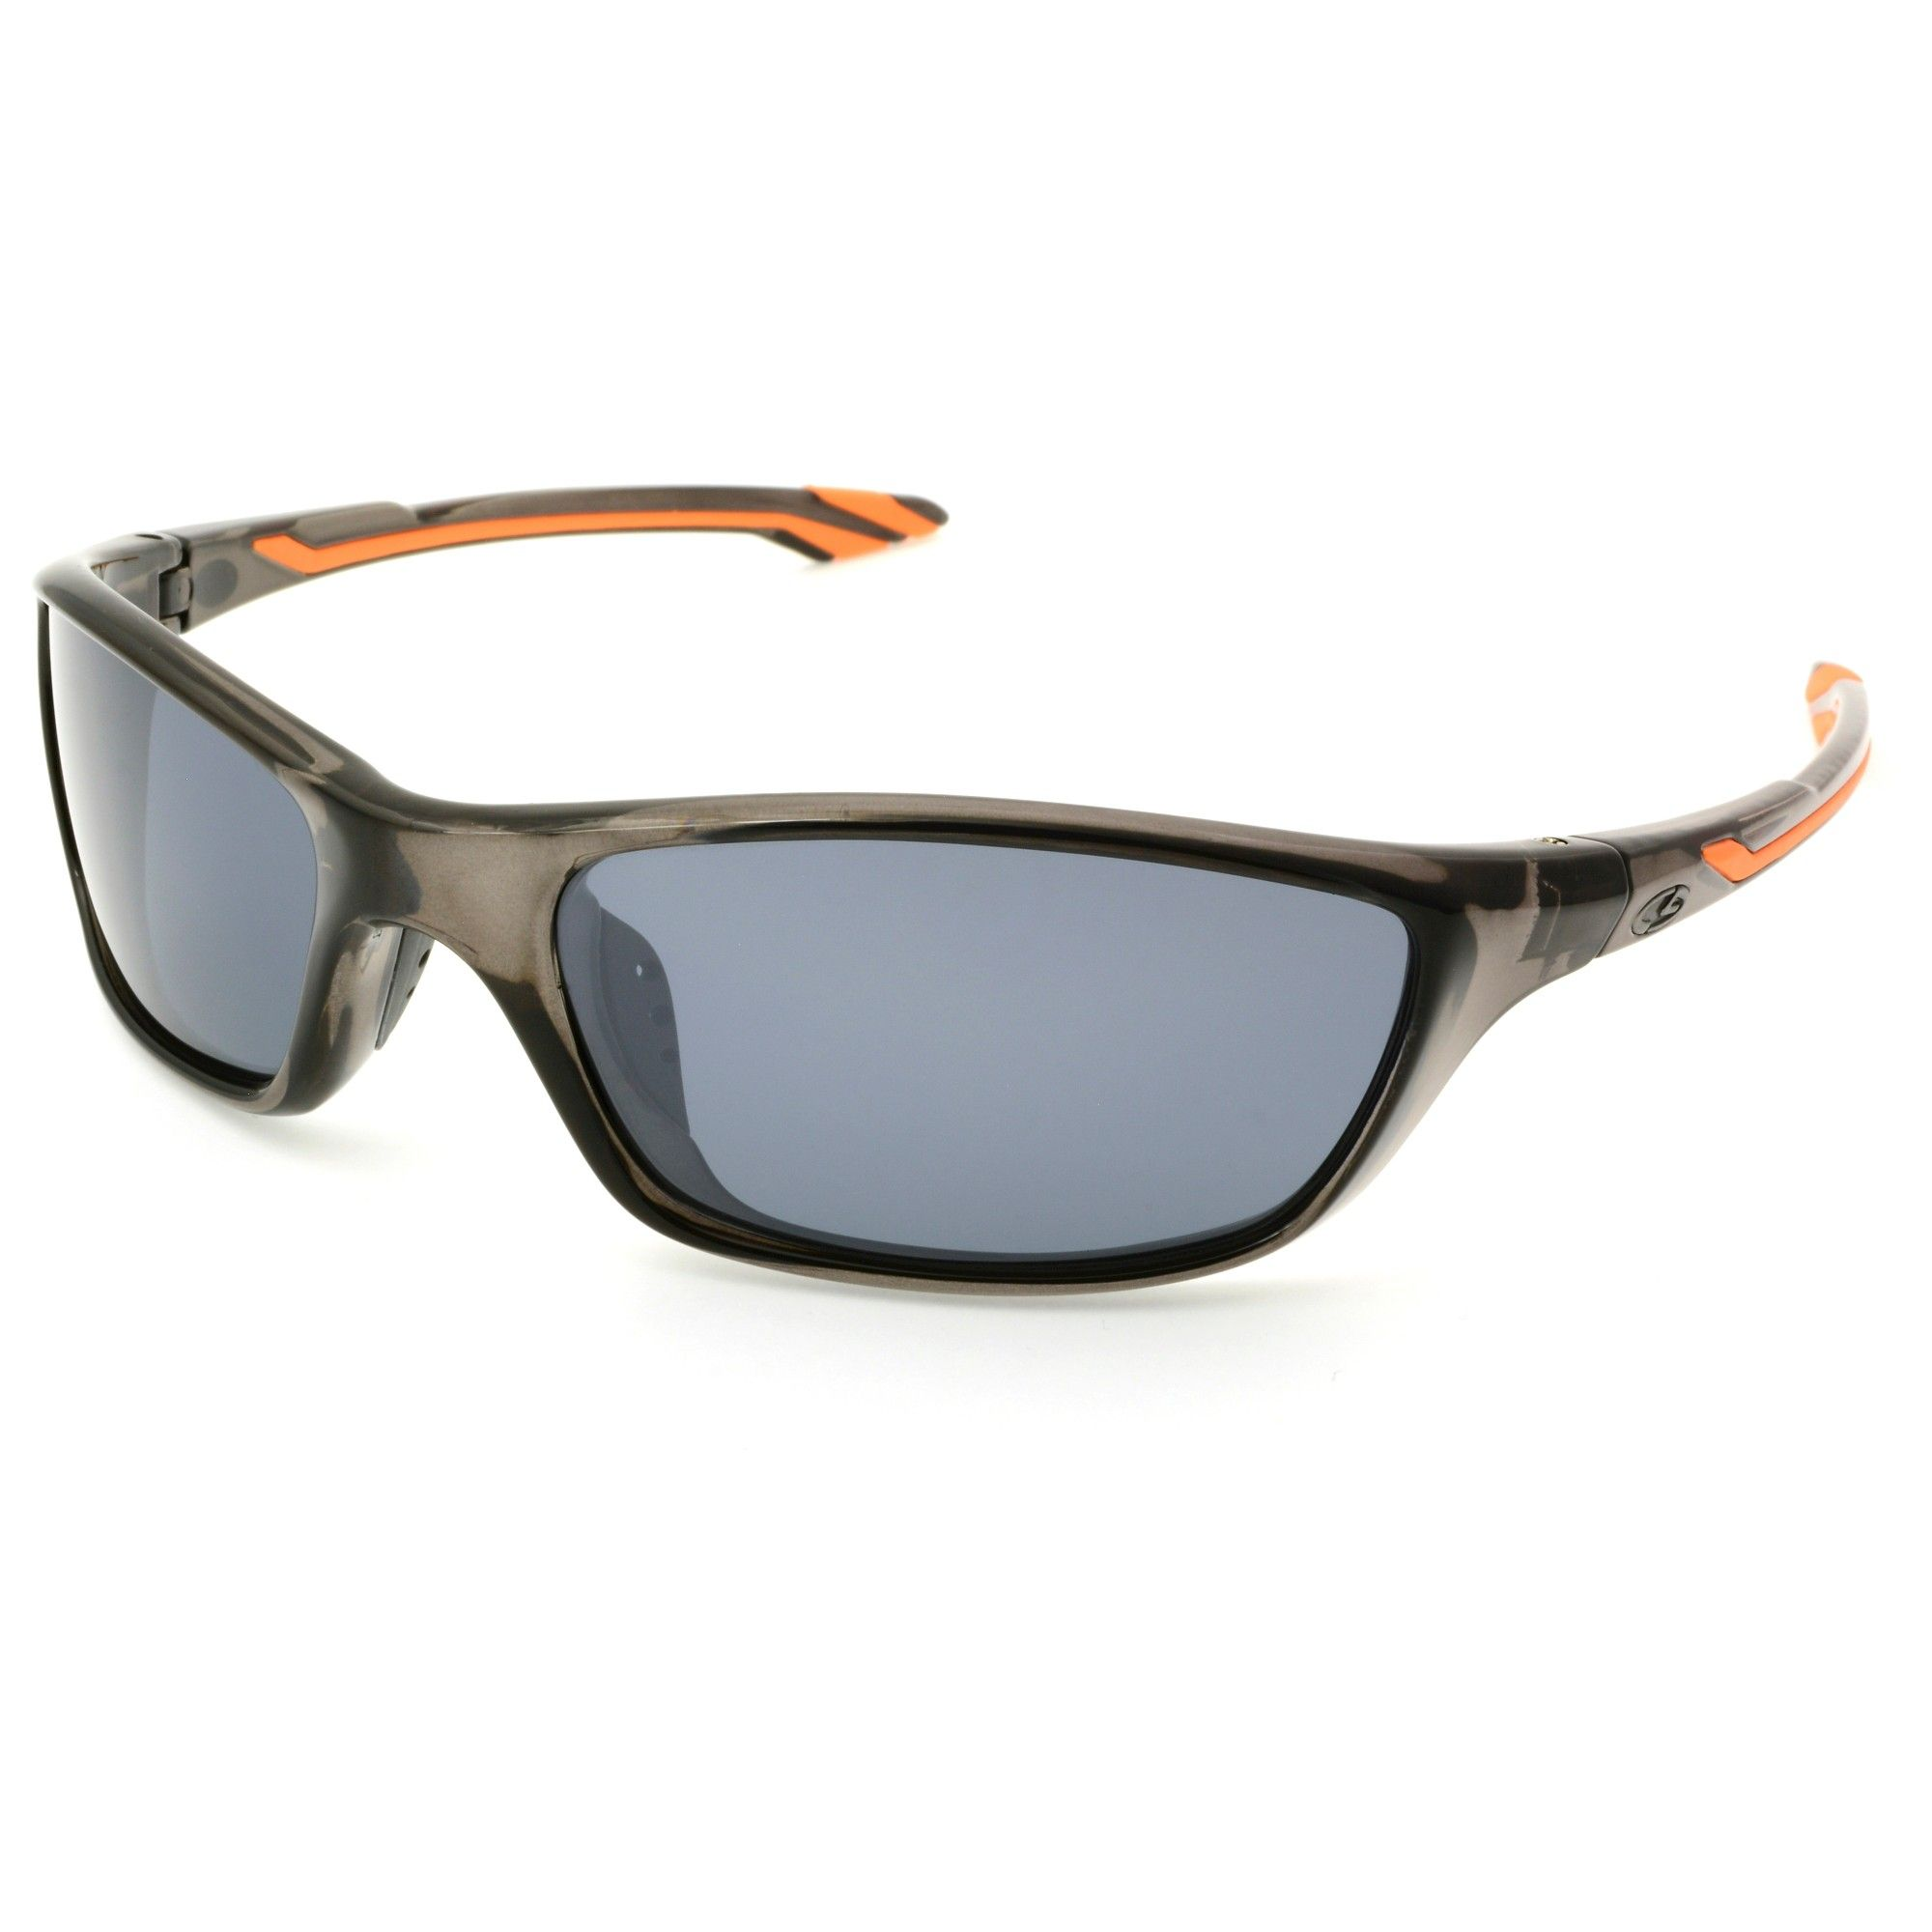 a86bf44593 Sport Sunglasses with Full Rim - C9 Champion Gray One Size